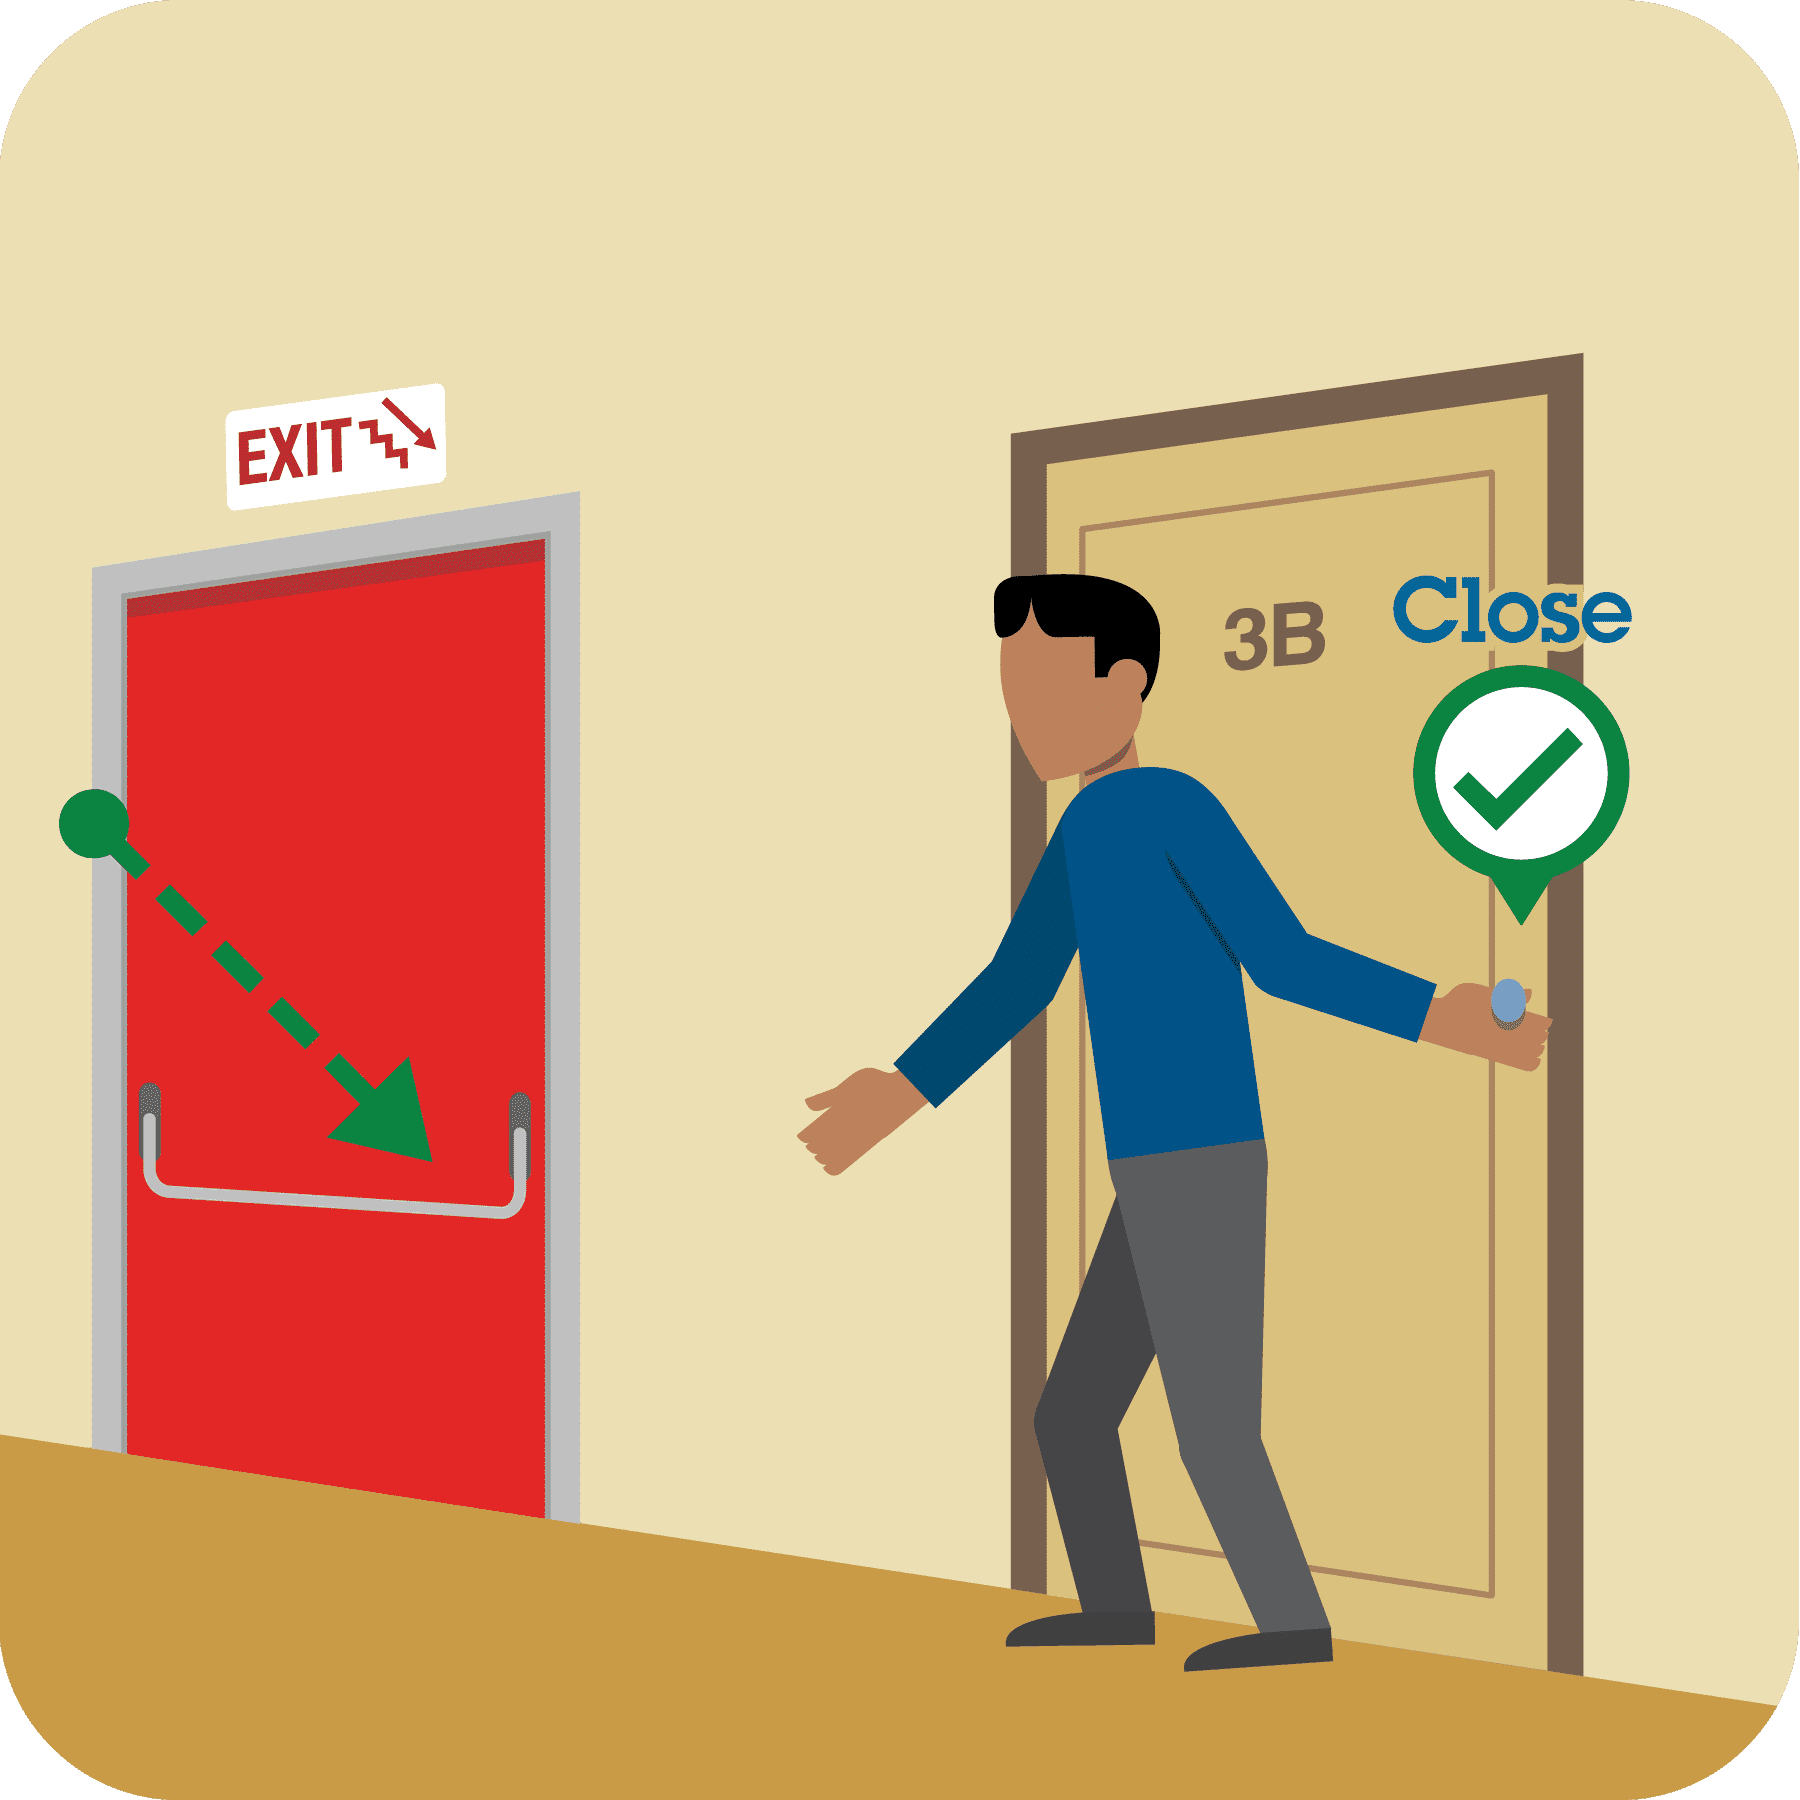 Man closing door with green check under prompt close. Green arrow pointing downstairs.